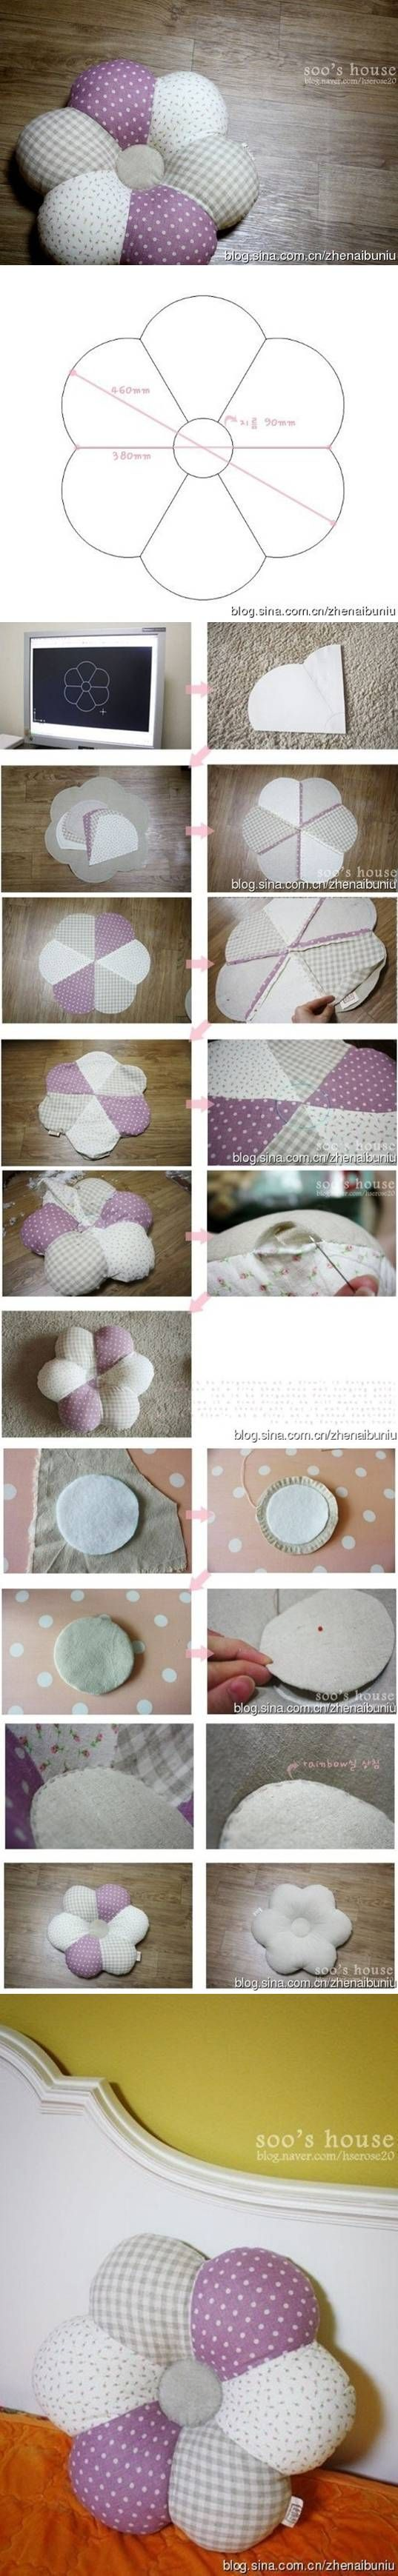 DIY Flower Style Pillow DIY Projects | UsefulDIY.com Follow Us on Facebook…